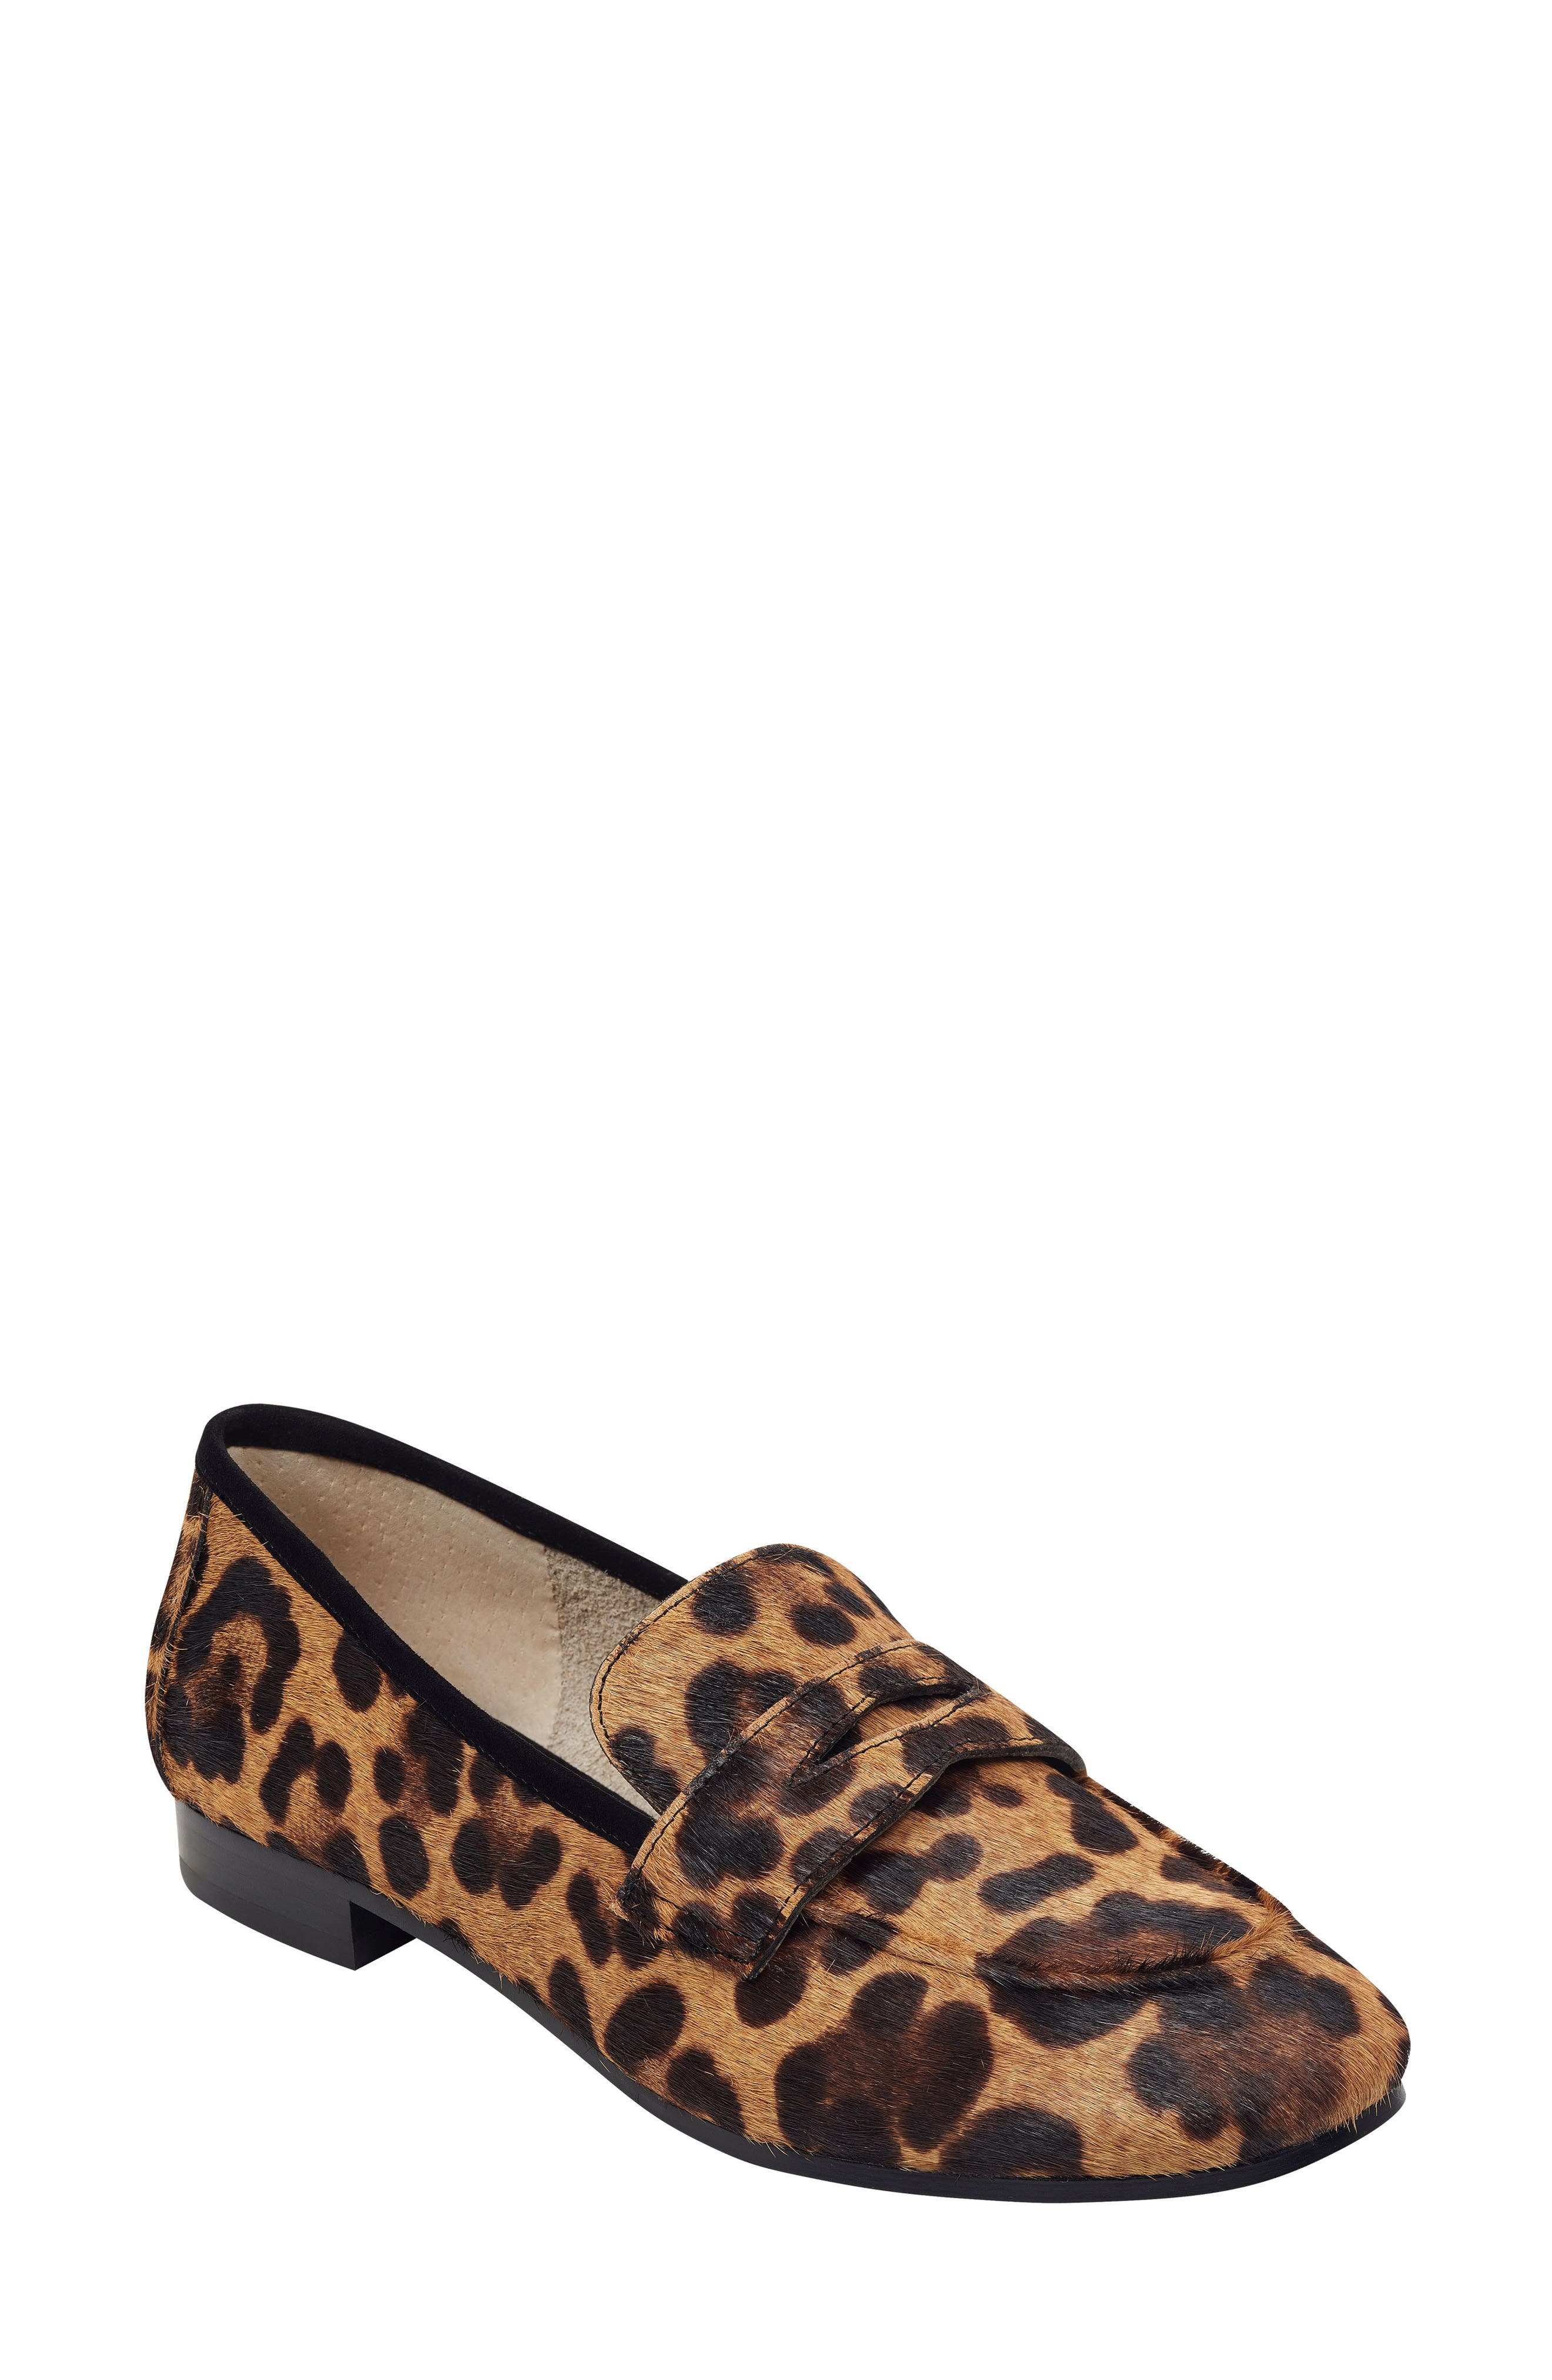 Chang Penny Loafer, Main, color, LEOPARD PRINT CALF HAIR